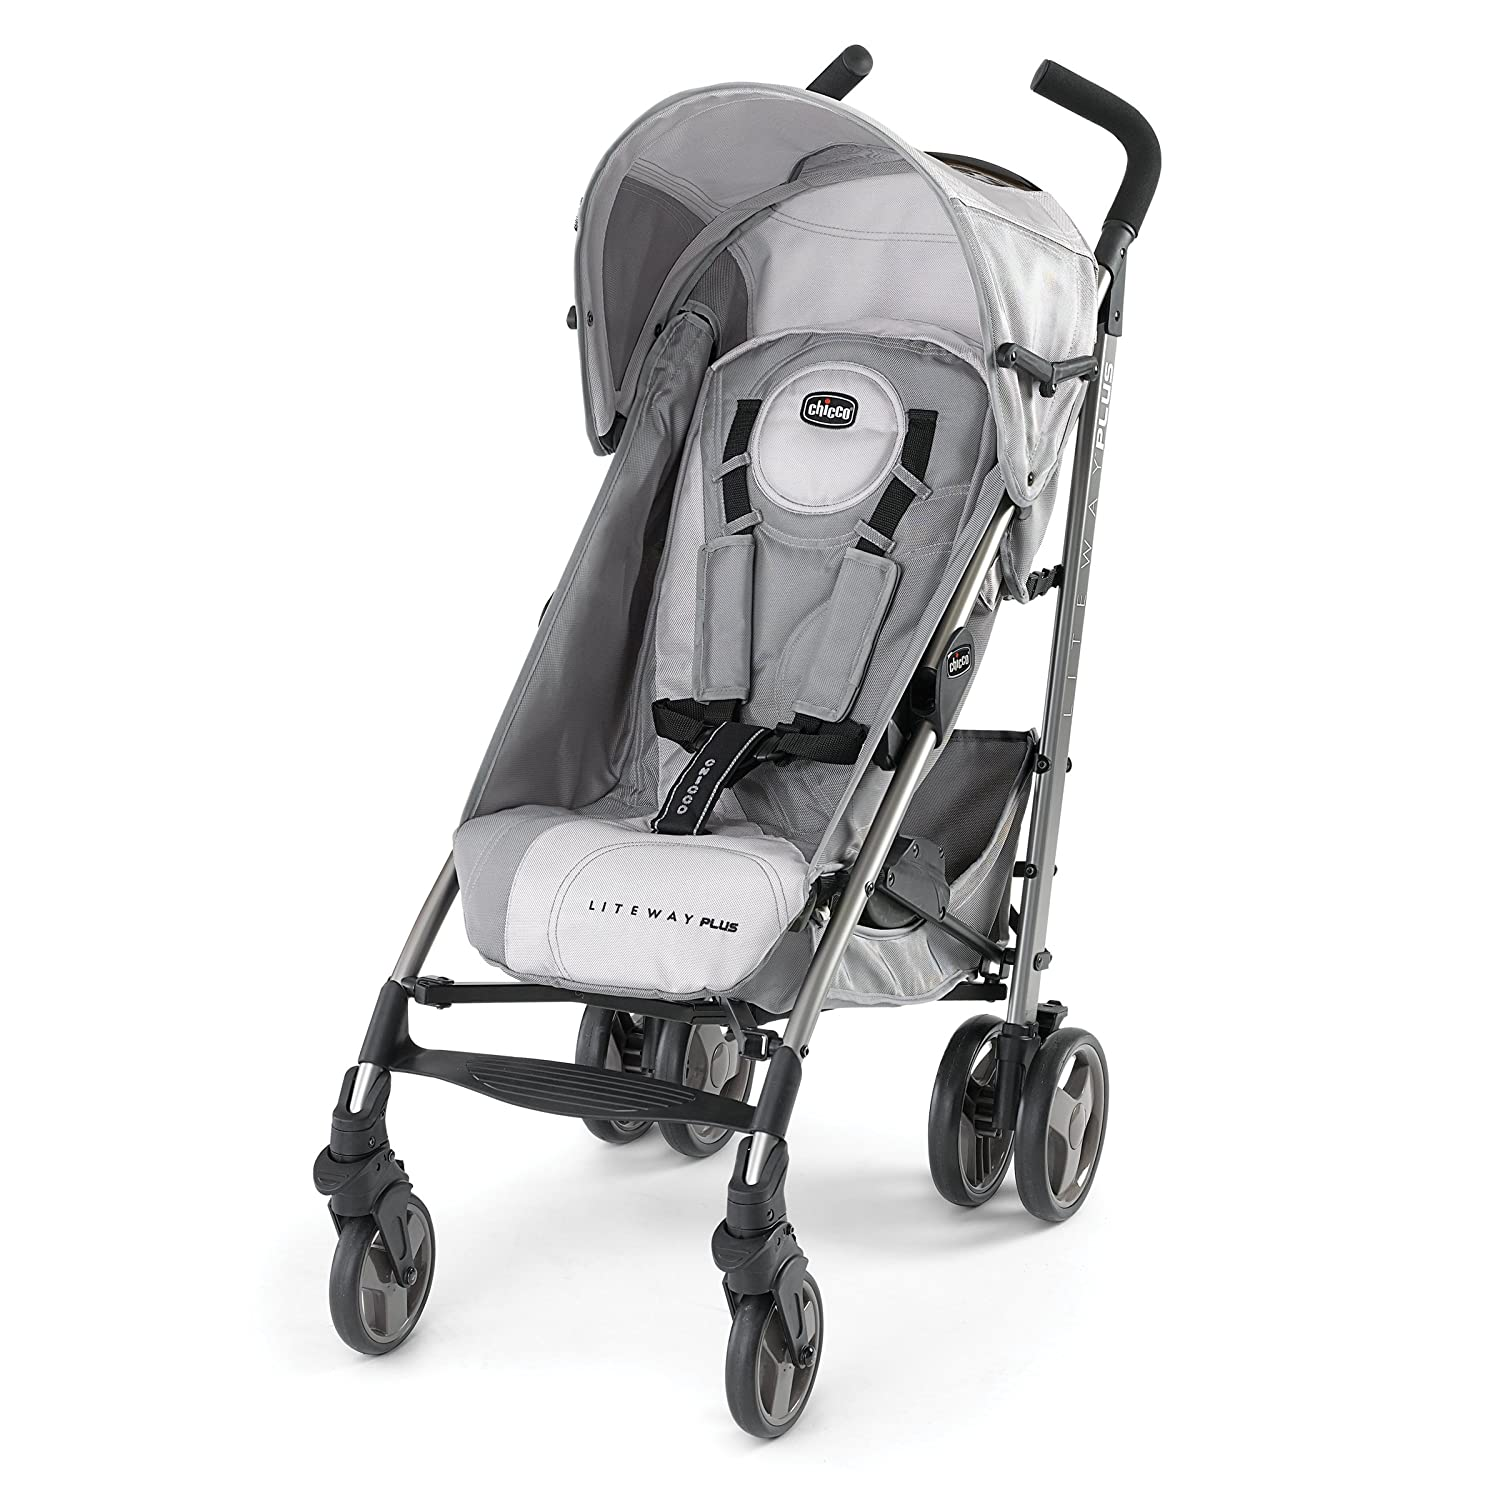 Amazon.com : Chicco Liteway Plus Stroller, Silver : Lightweight ...